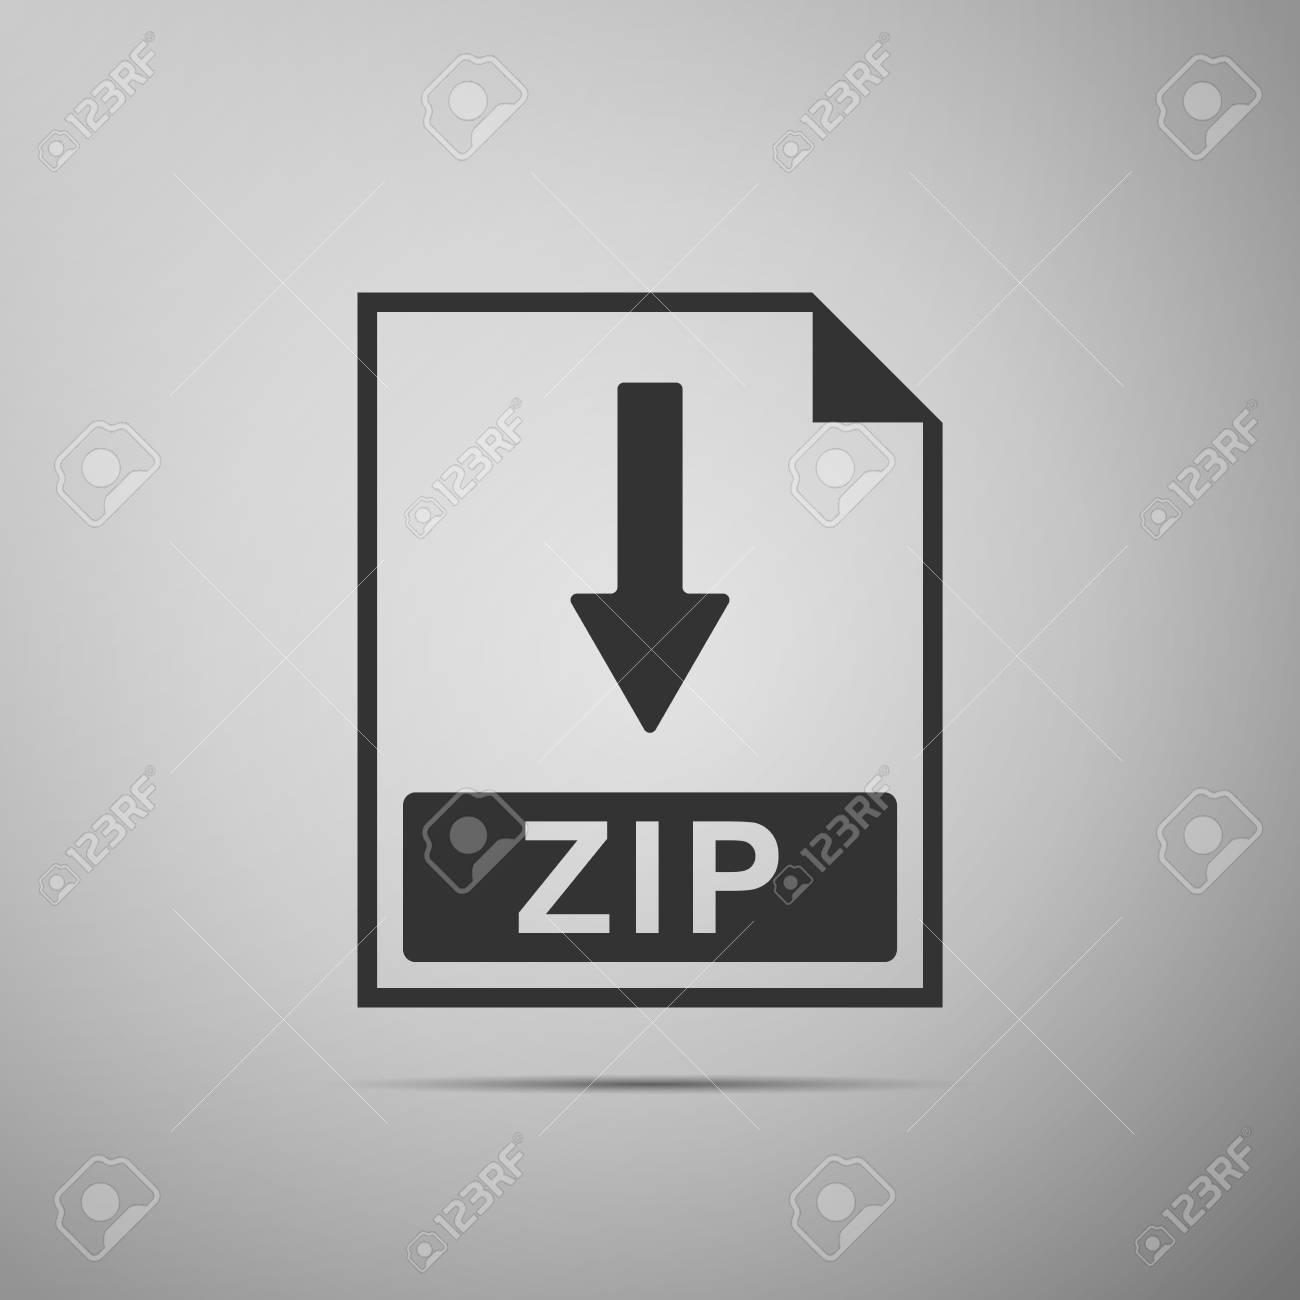 ZIP file document icon  Download ZIP button icon isolated on